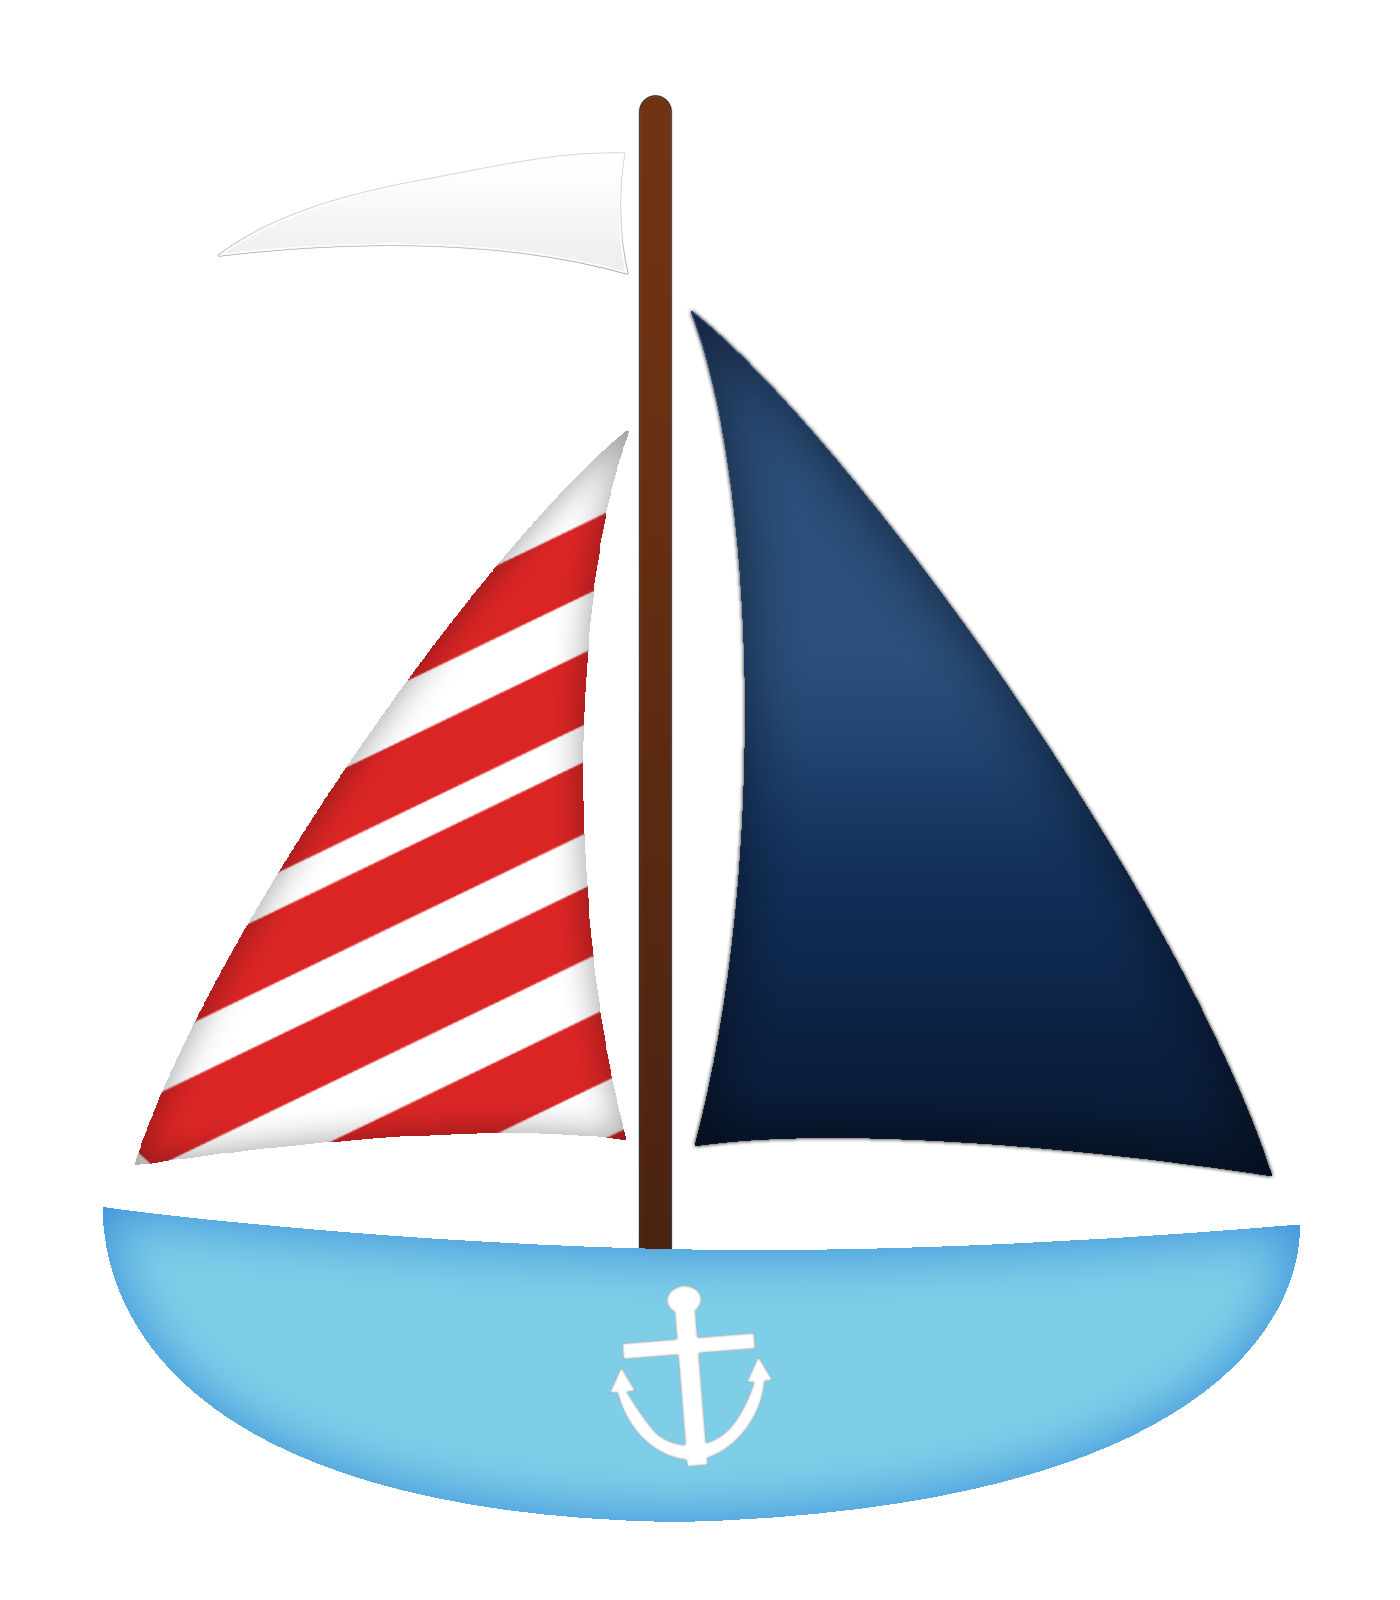 Number 1 clipart nautical. Sail boat pinterest boats